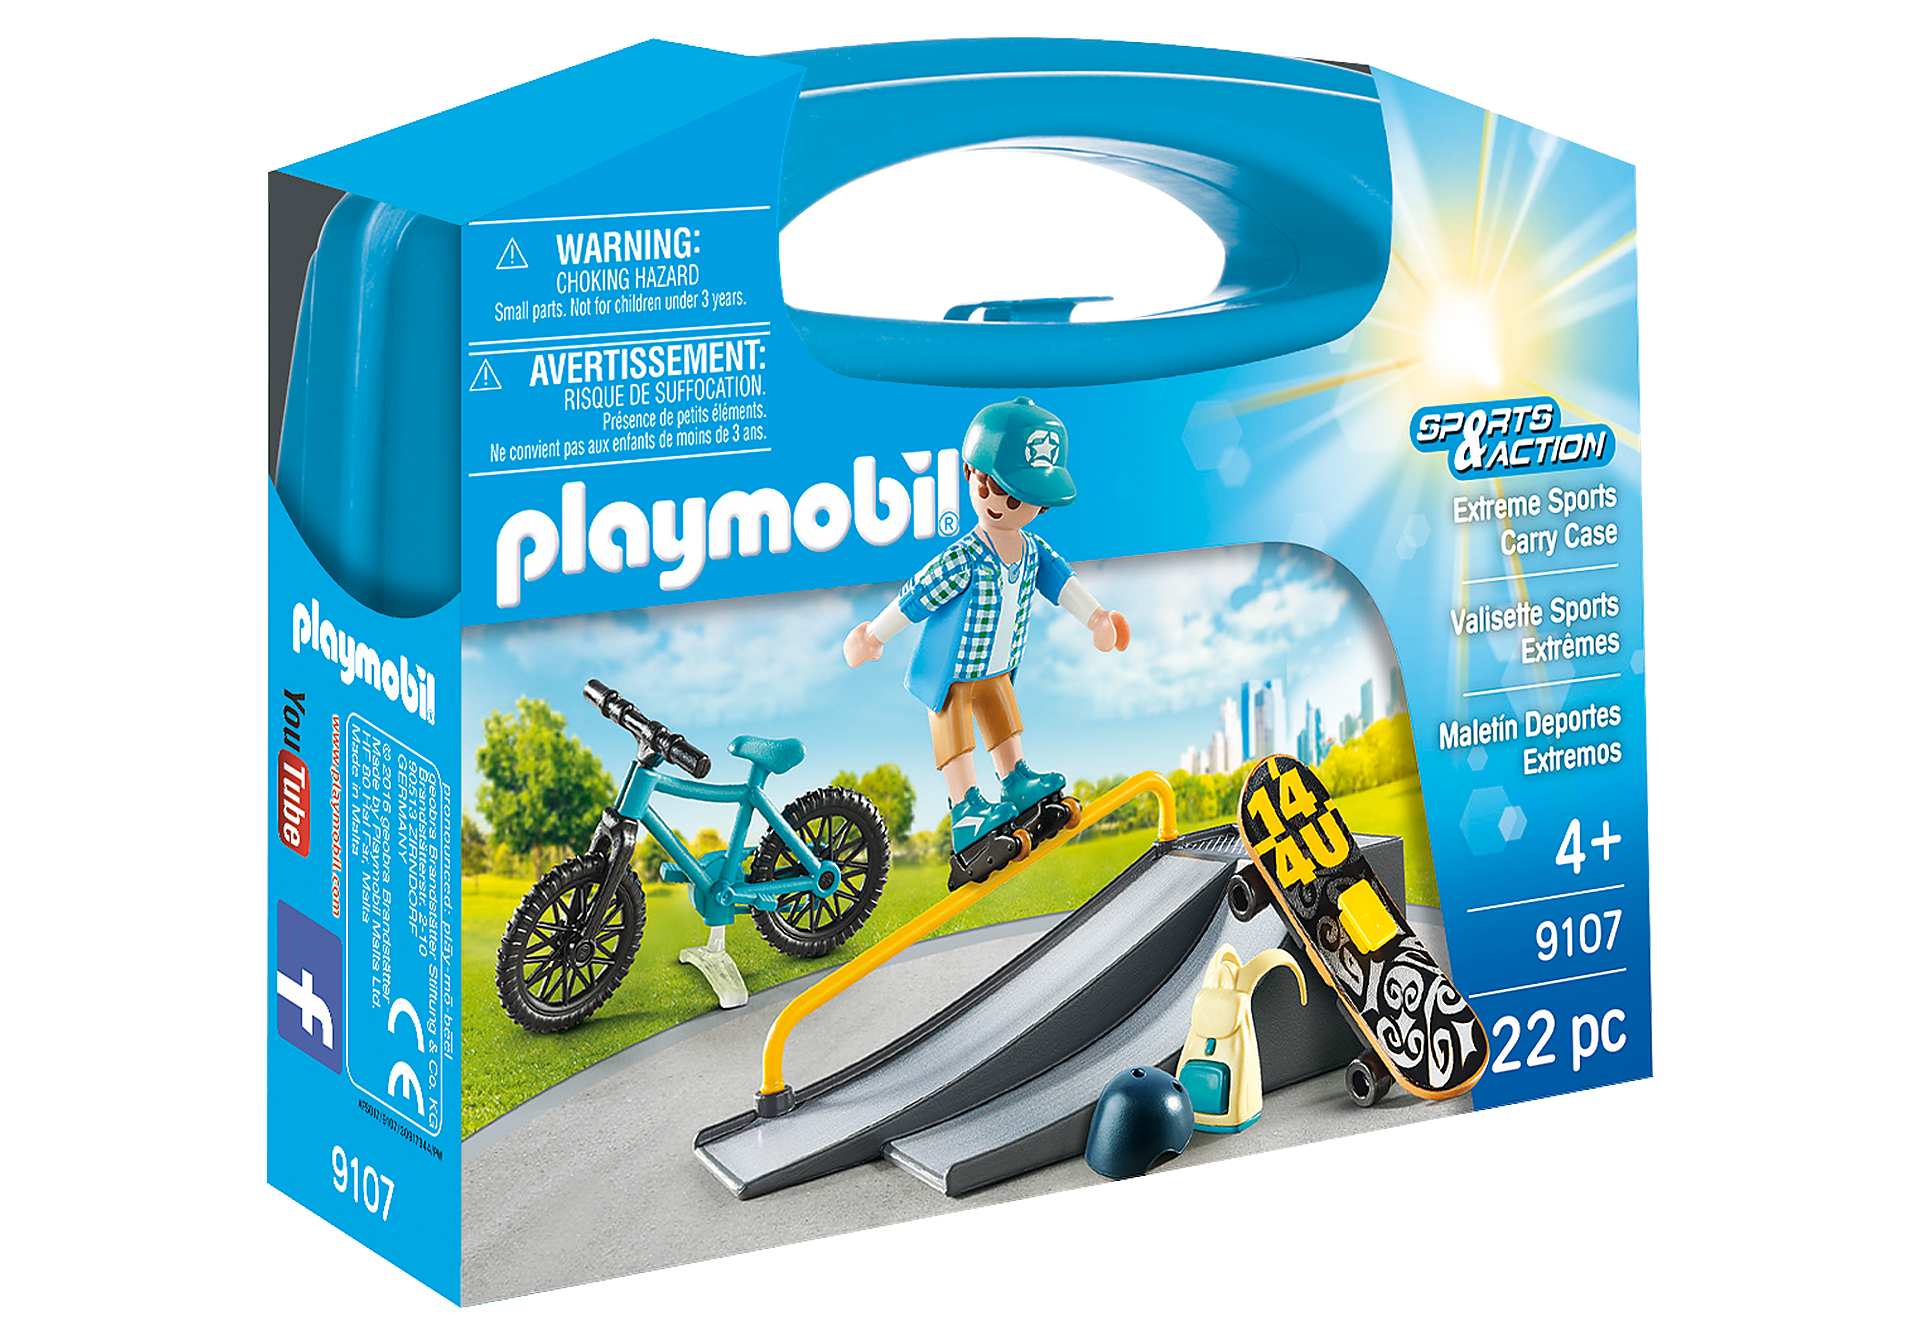 http://media.playmobil.com/i/playmobil/9107_product_box_front/Extreme Sports Carry Case